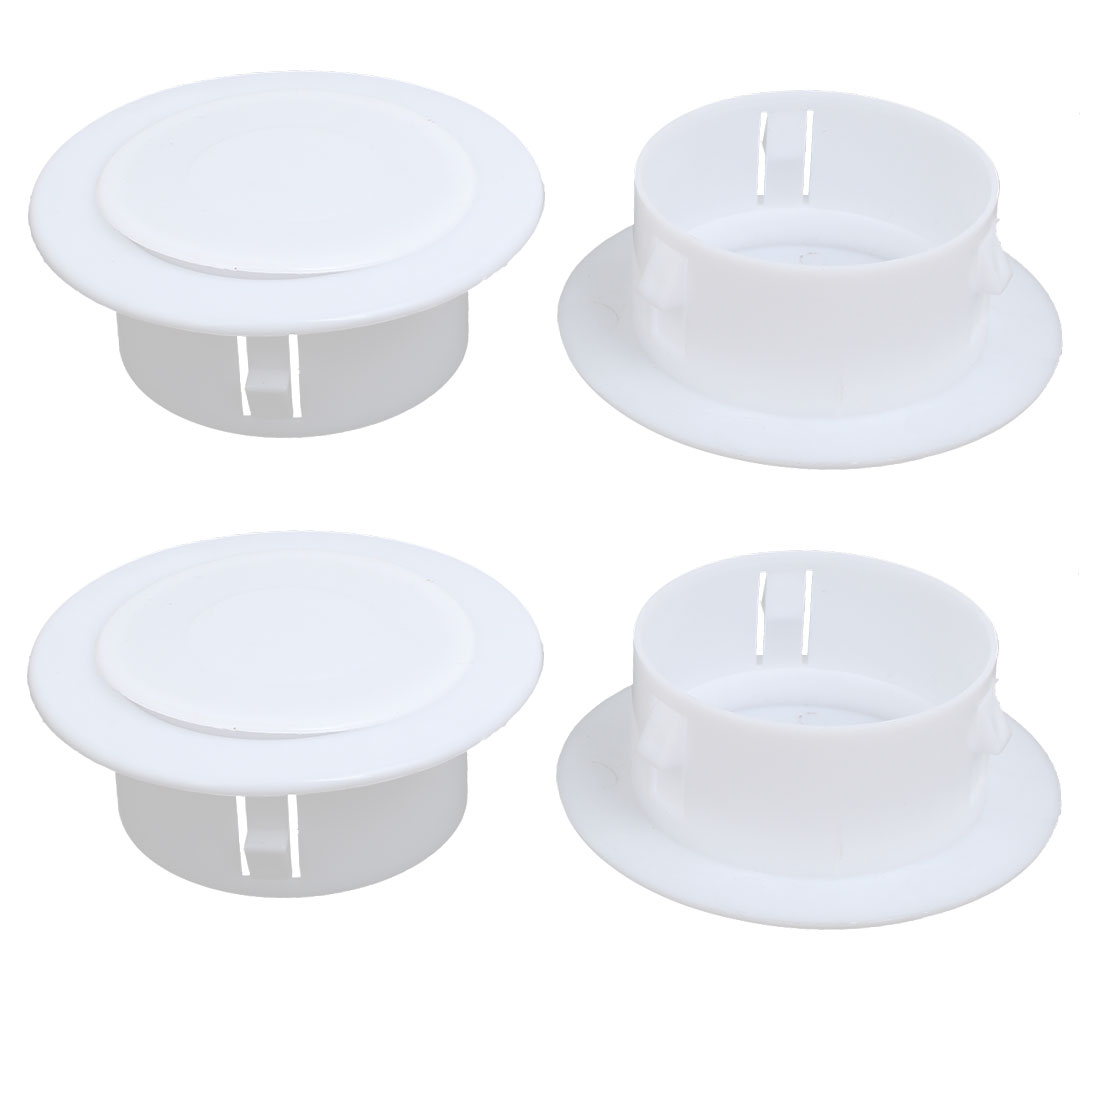 99mmx36mm Plastic Air Conditioning Wall Hole Cover White 4pcs